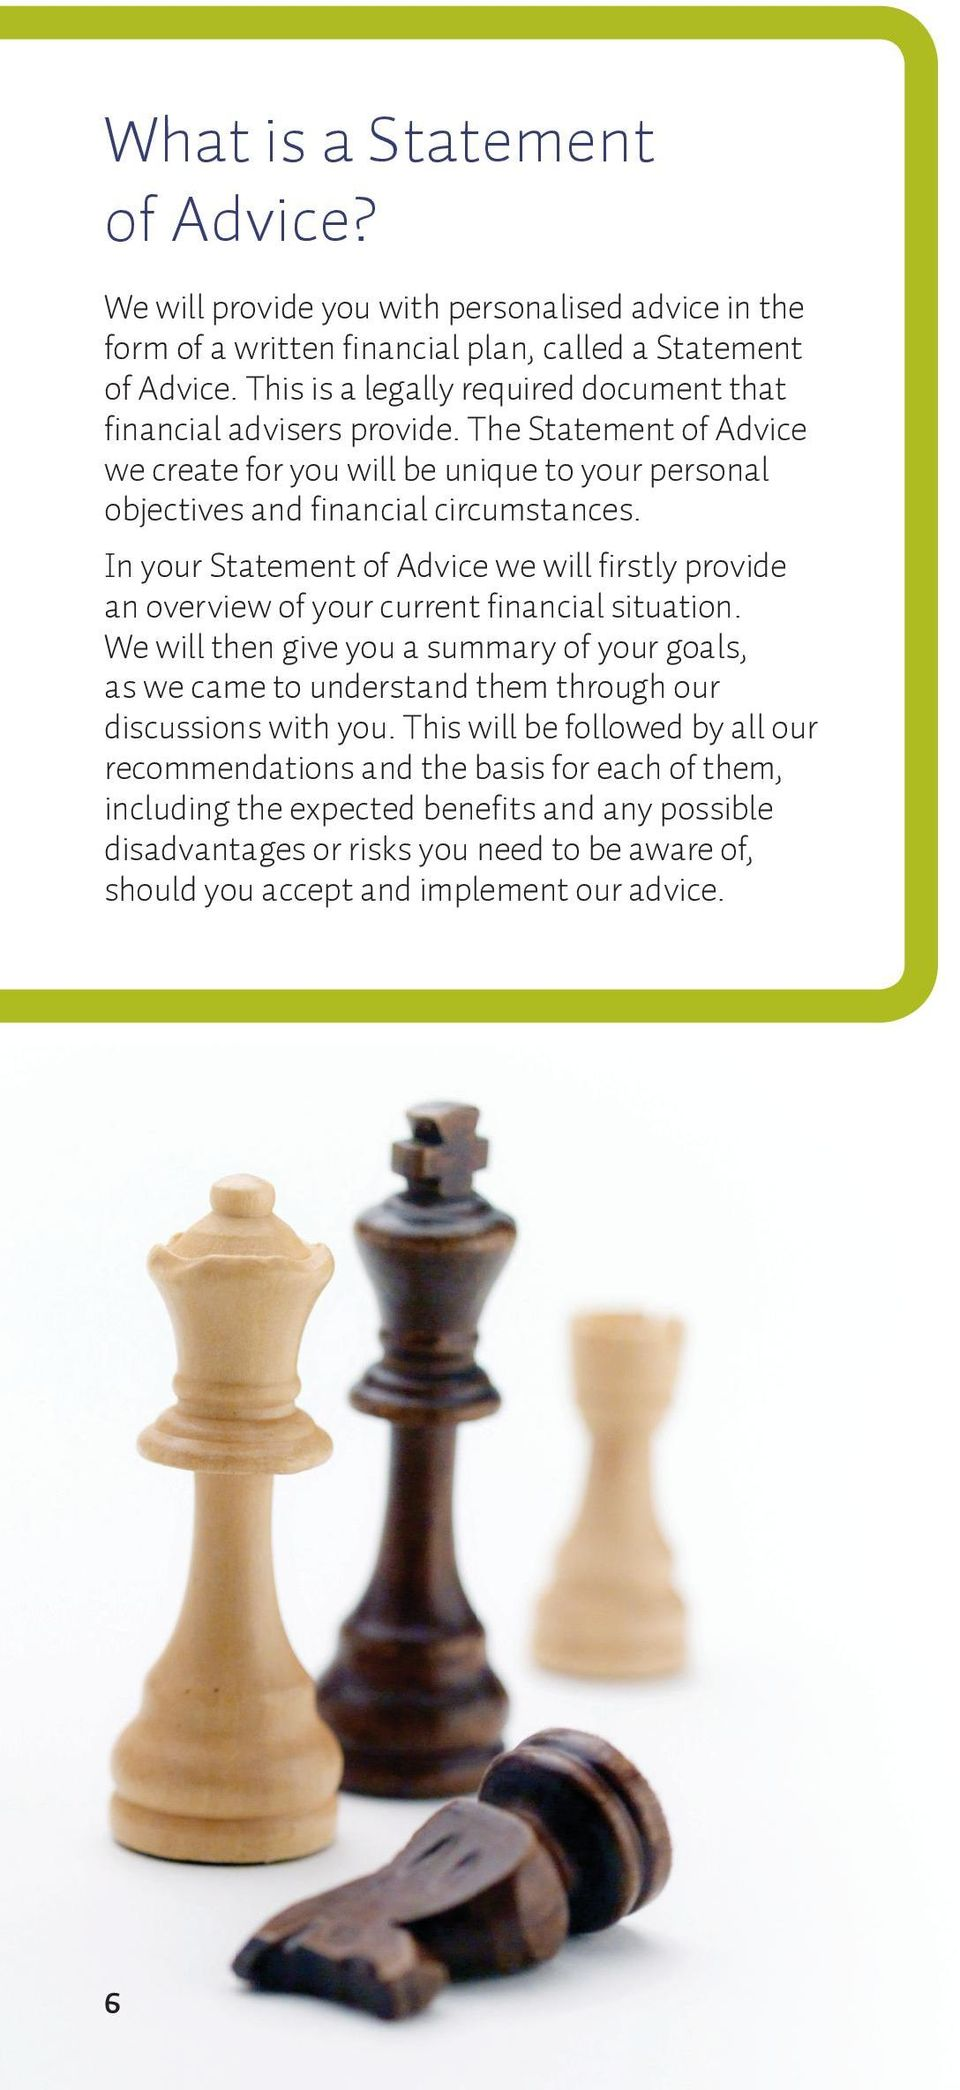 In your Statement of Advice we will firstly provide an overview of your current financial situation.